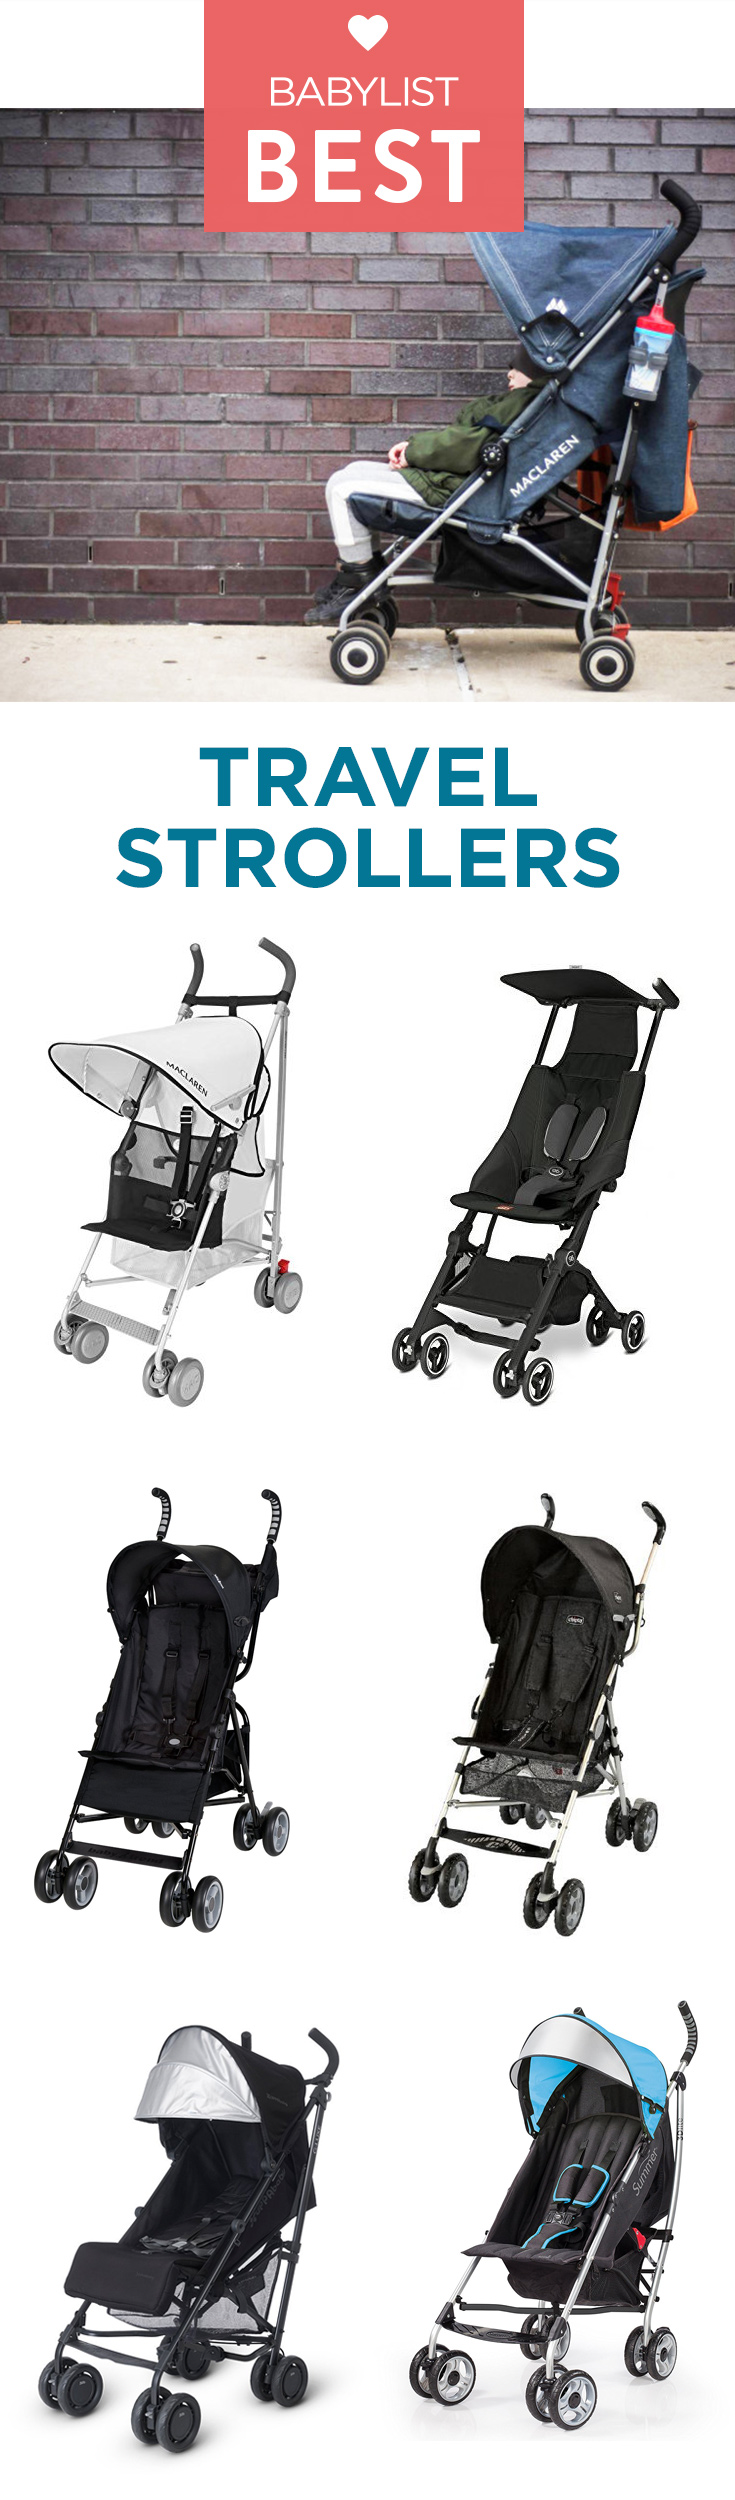 Because of their lighter weight and compact fold, travel strollers are more convenient than others for toting up stairs, riding on public transportation, and stowing out of the way in small hotel rooms and hole-in-the-wall eateries.